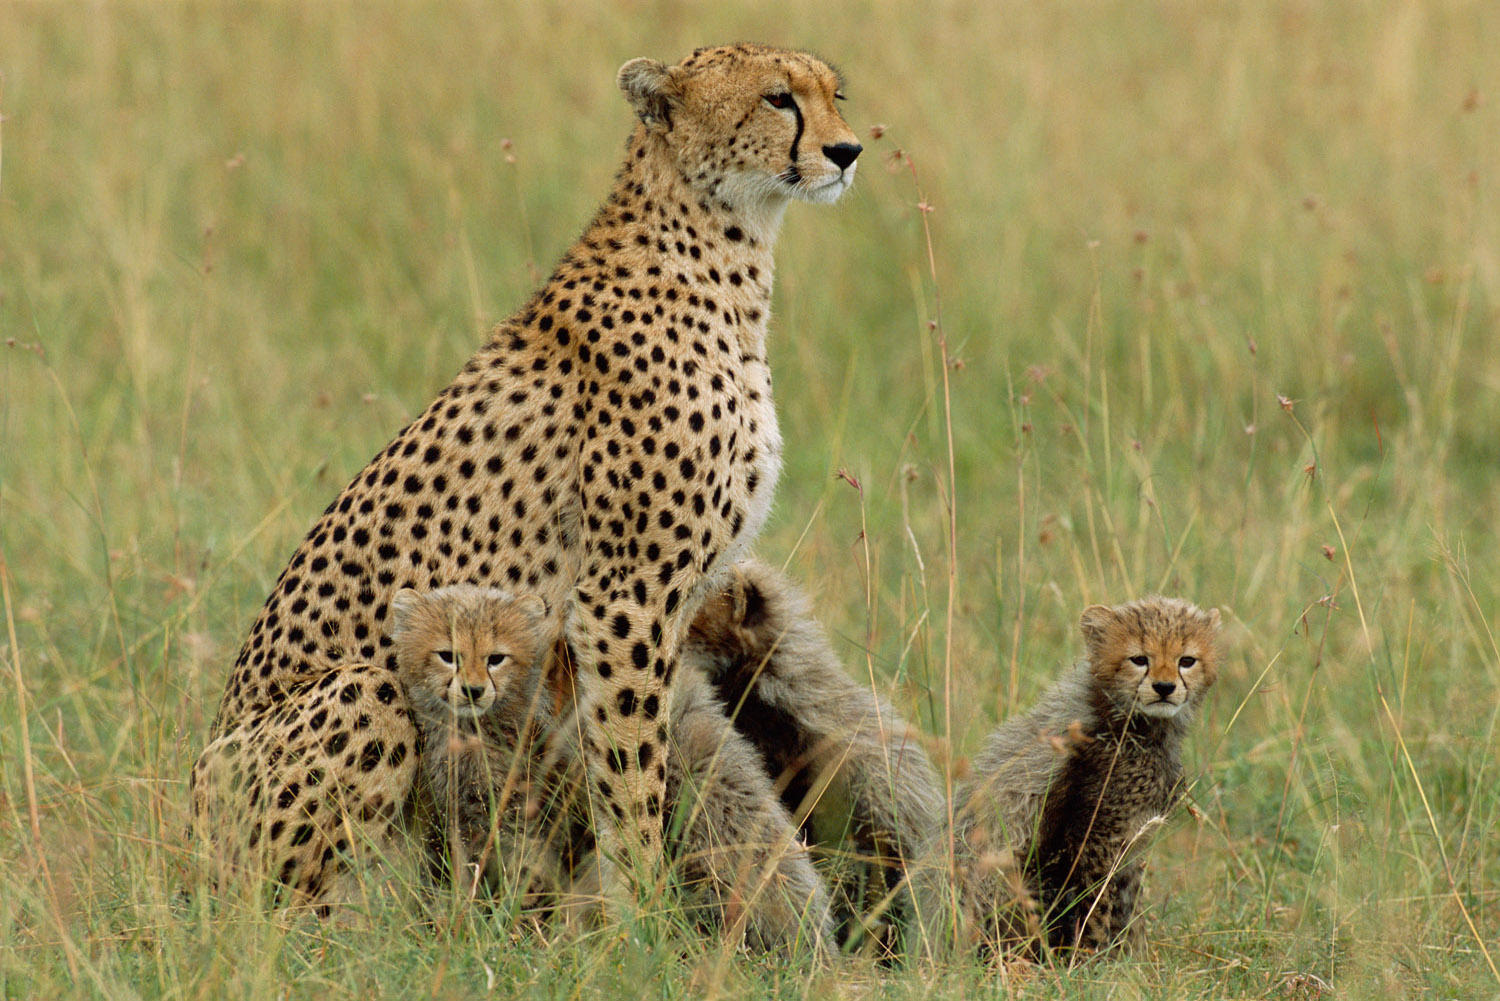 Cheetah mother with cubs, Masai Mara National Reserve, Kenya